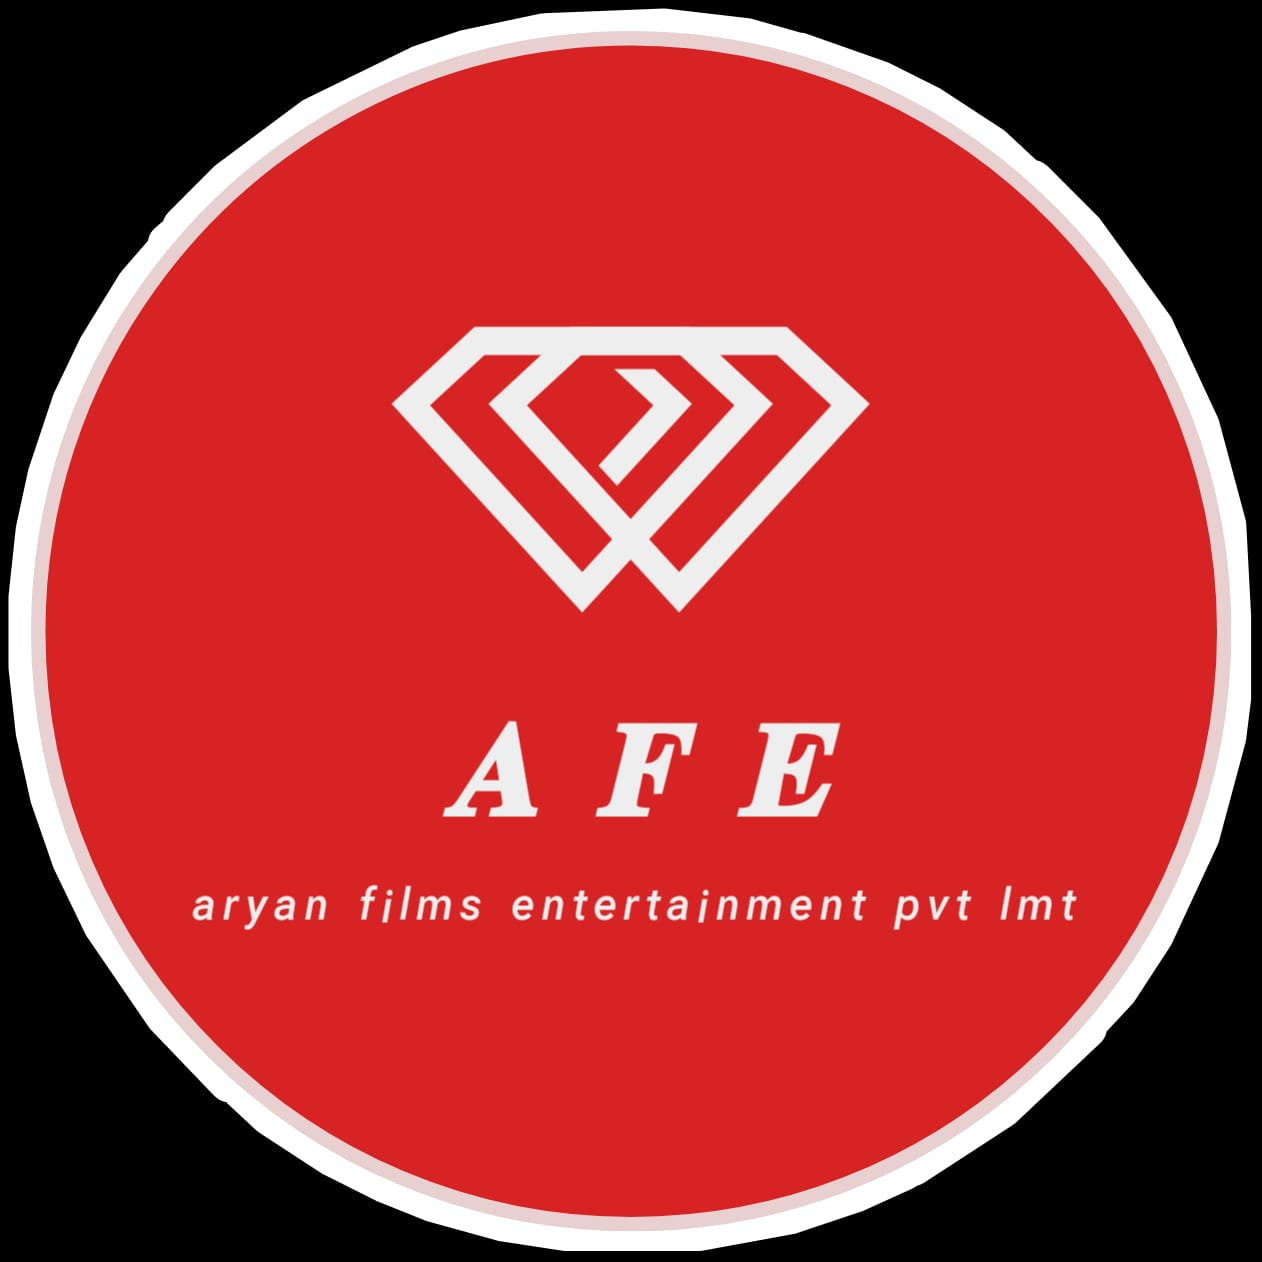 Aryan Films Entertainment pvt ltd